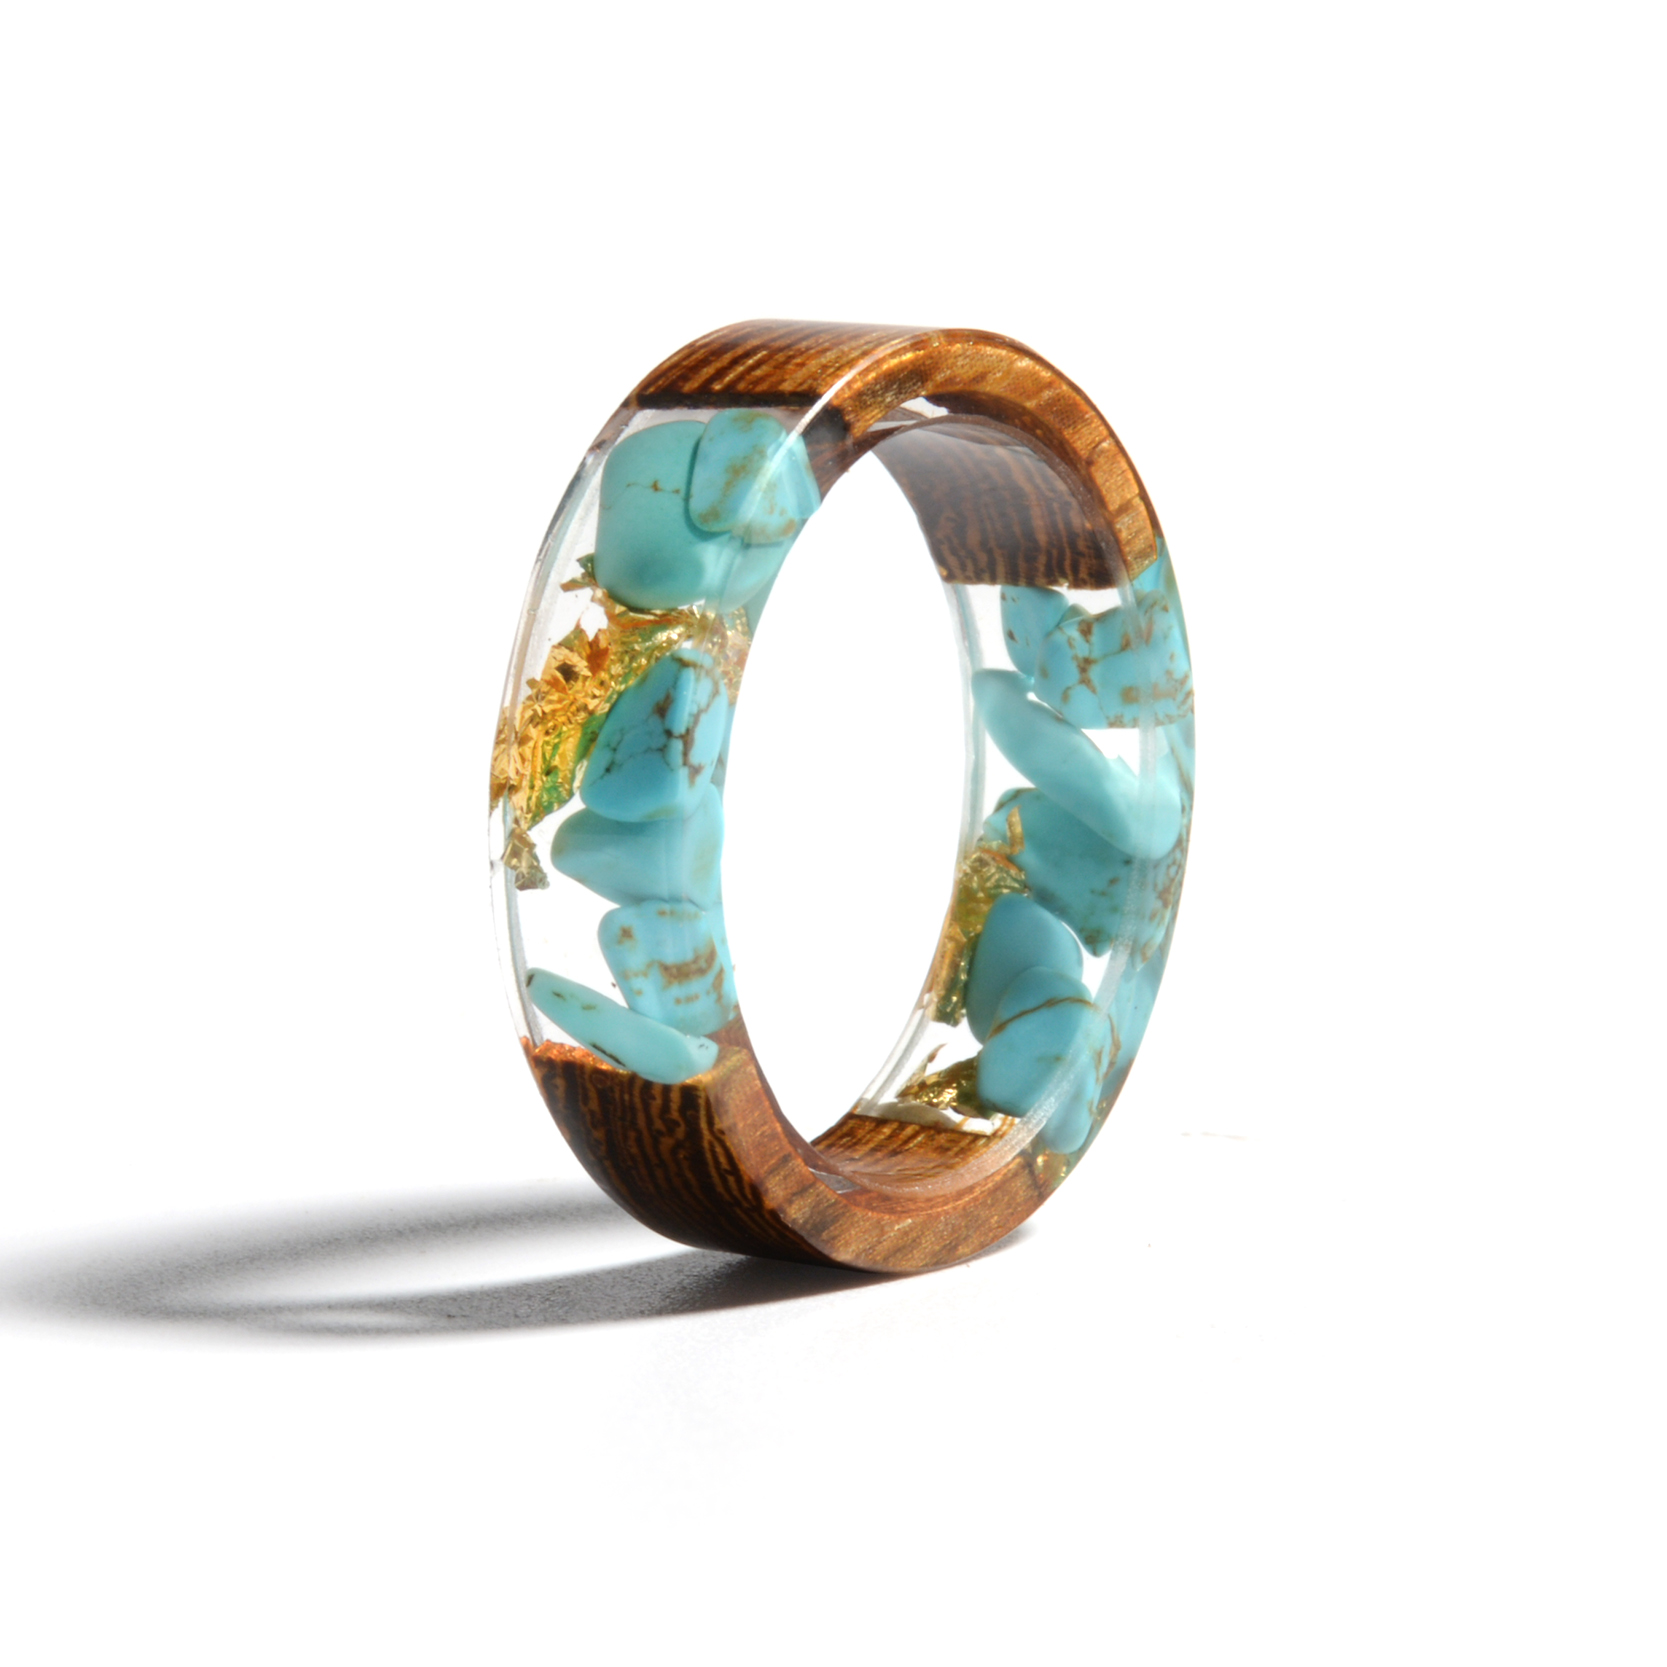 HTB1Mud3afjsK1Rjy1Xaq6zispXad - Hot Sale Handmade Wood Resin Ring Dried Flowers Plants Inside Jewelry Resin Ring Transparent Anniversary Ring for Women